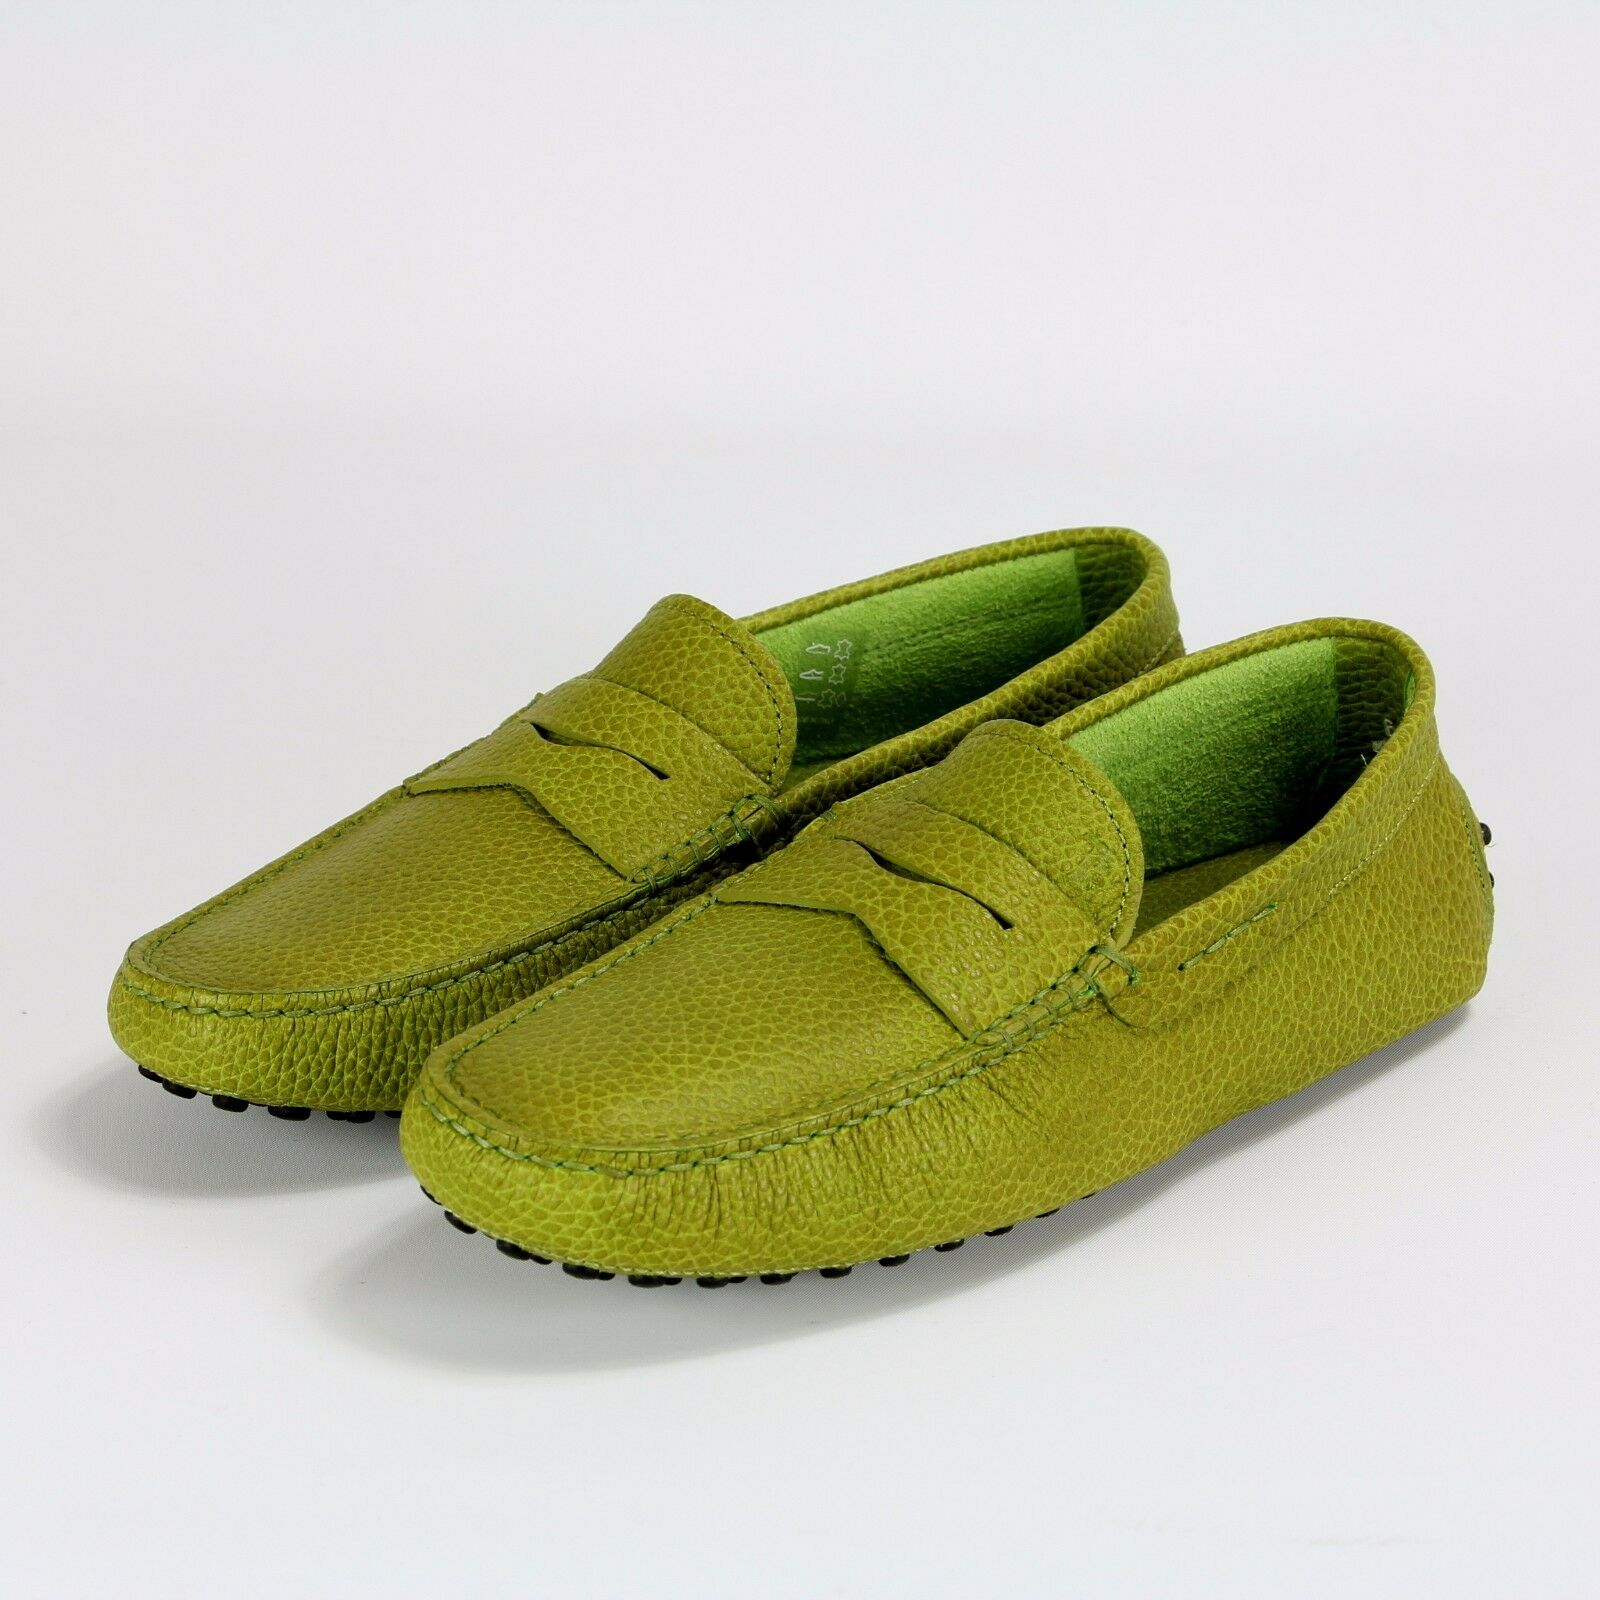 425 NEW Tods verde Gommino Leather Drivers Loafer Moccasins scarpe 6 36 ITALY